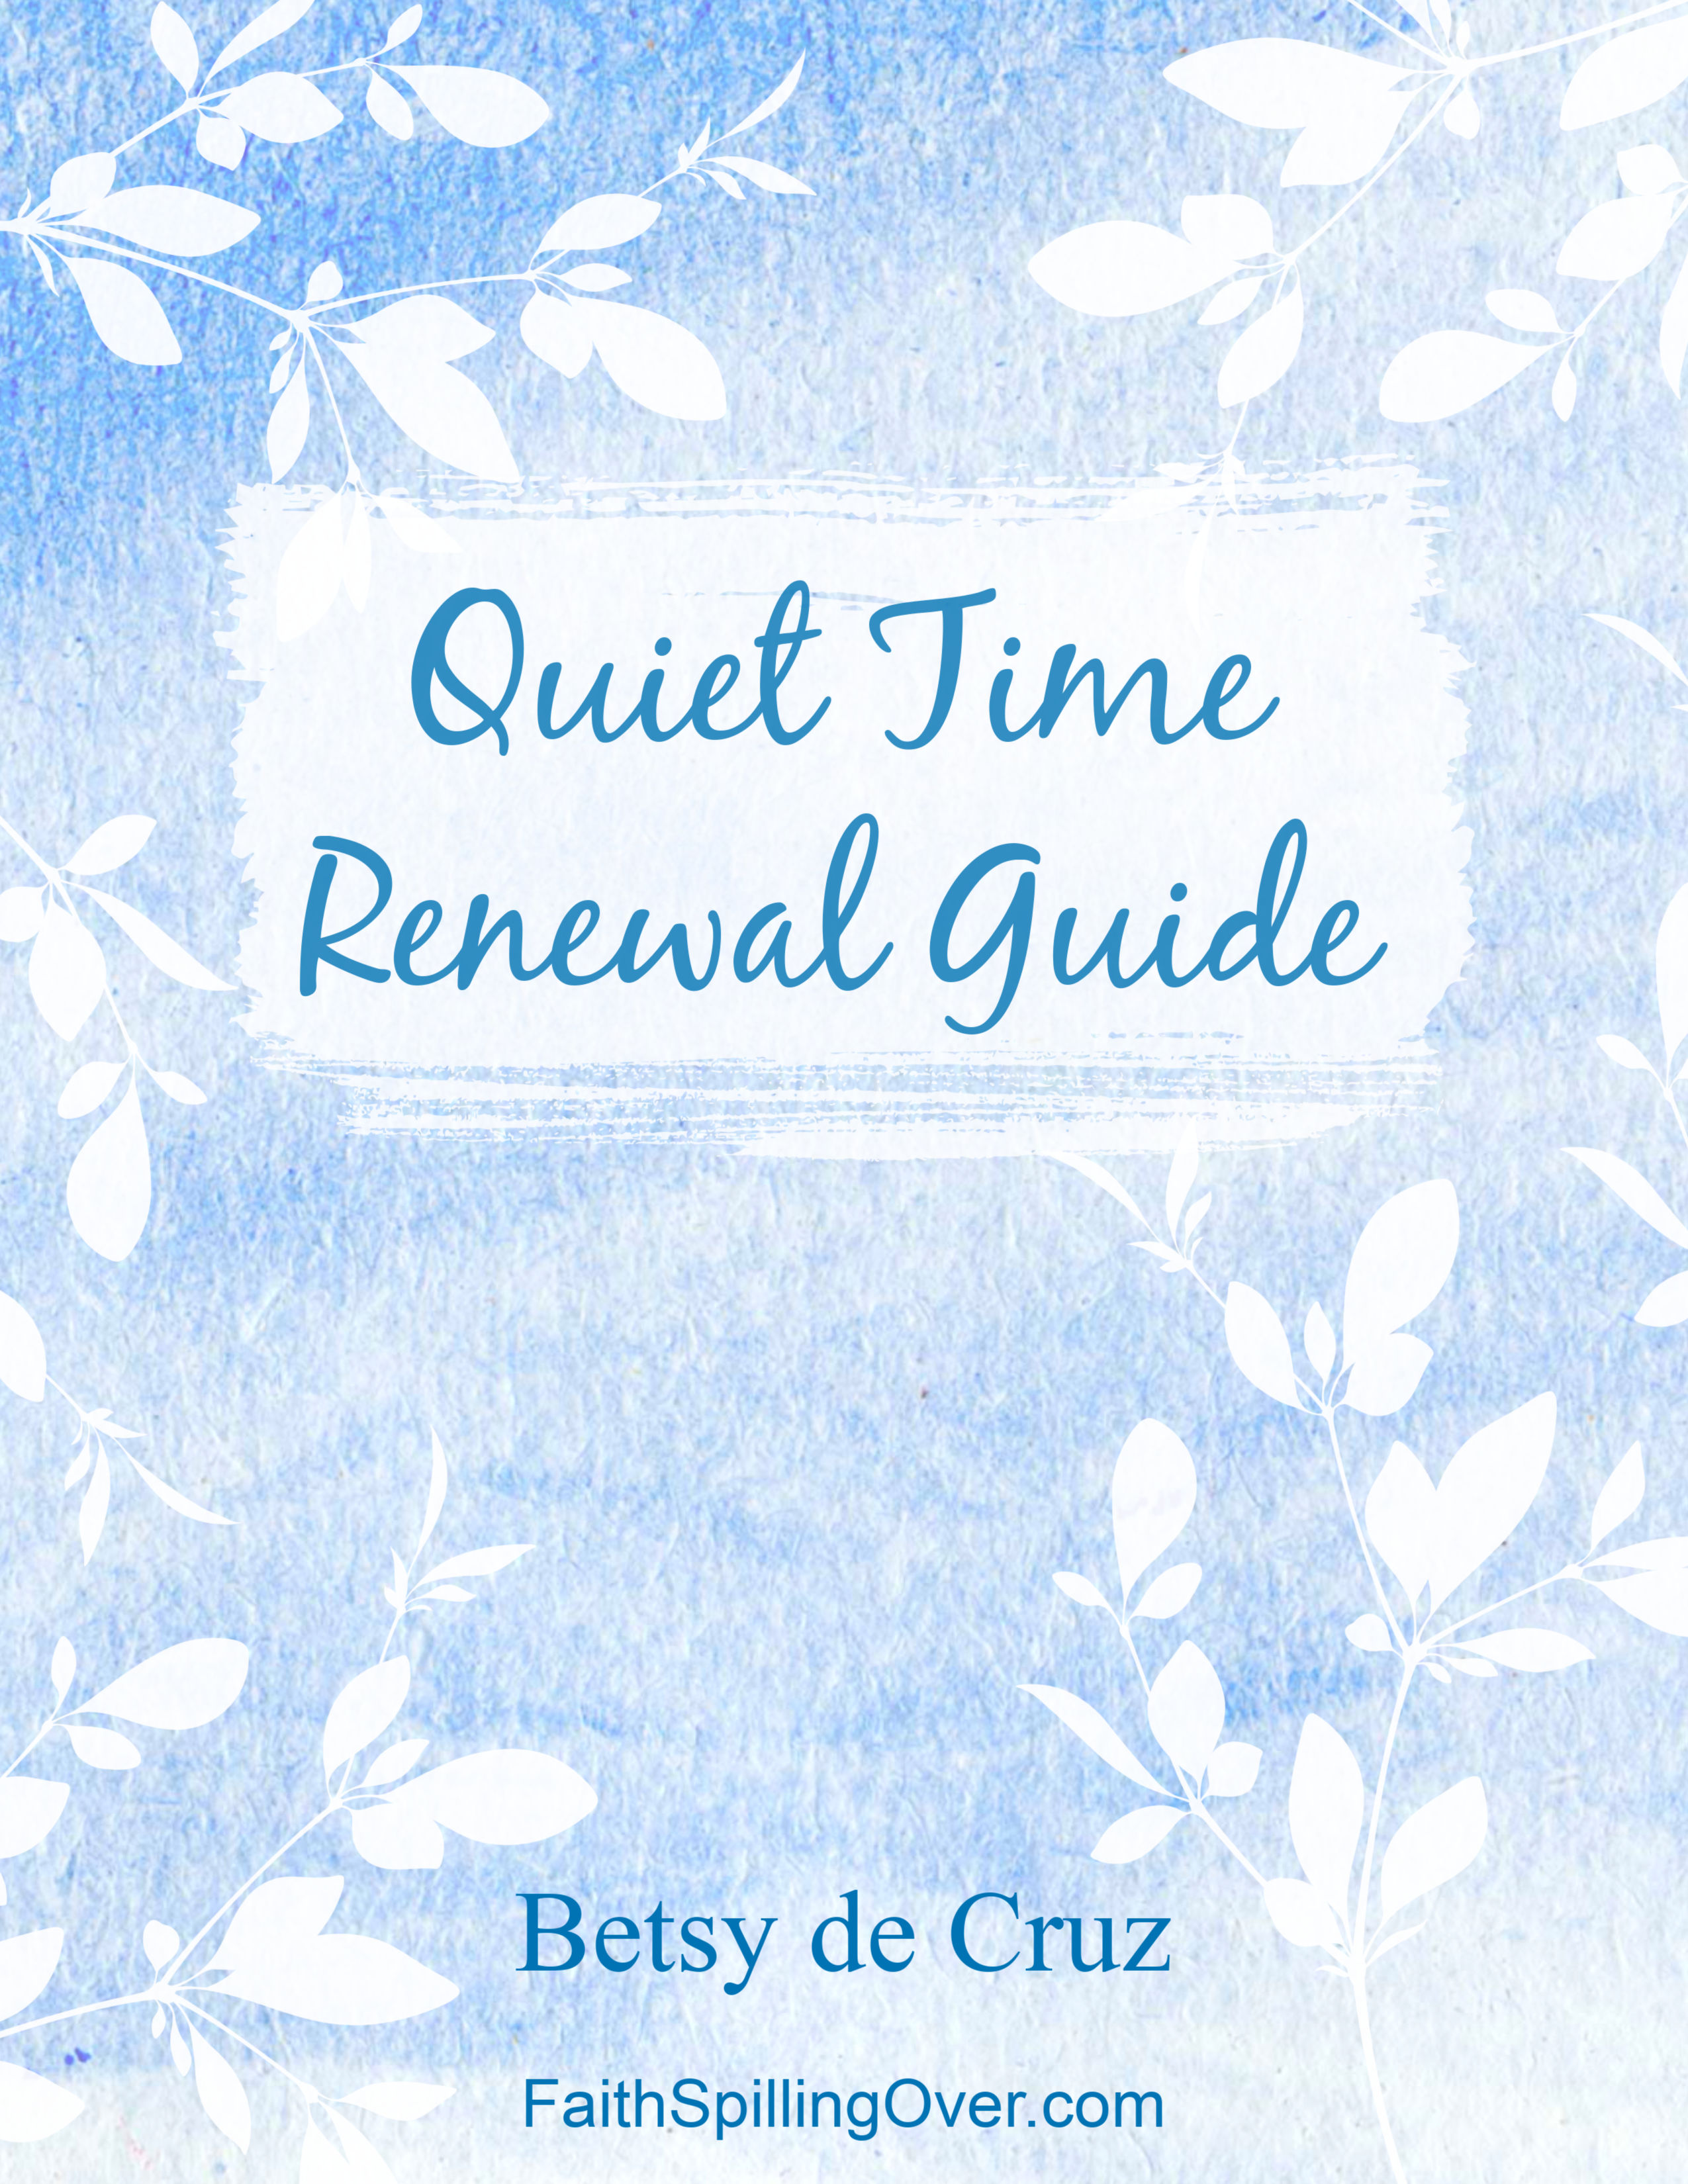 Subscribe to faithspillingover.com to receive a free Quiet Time Renewal Guide!